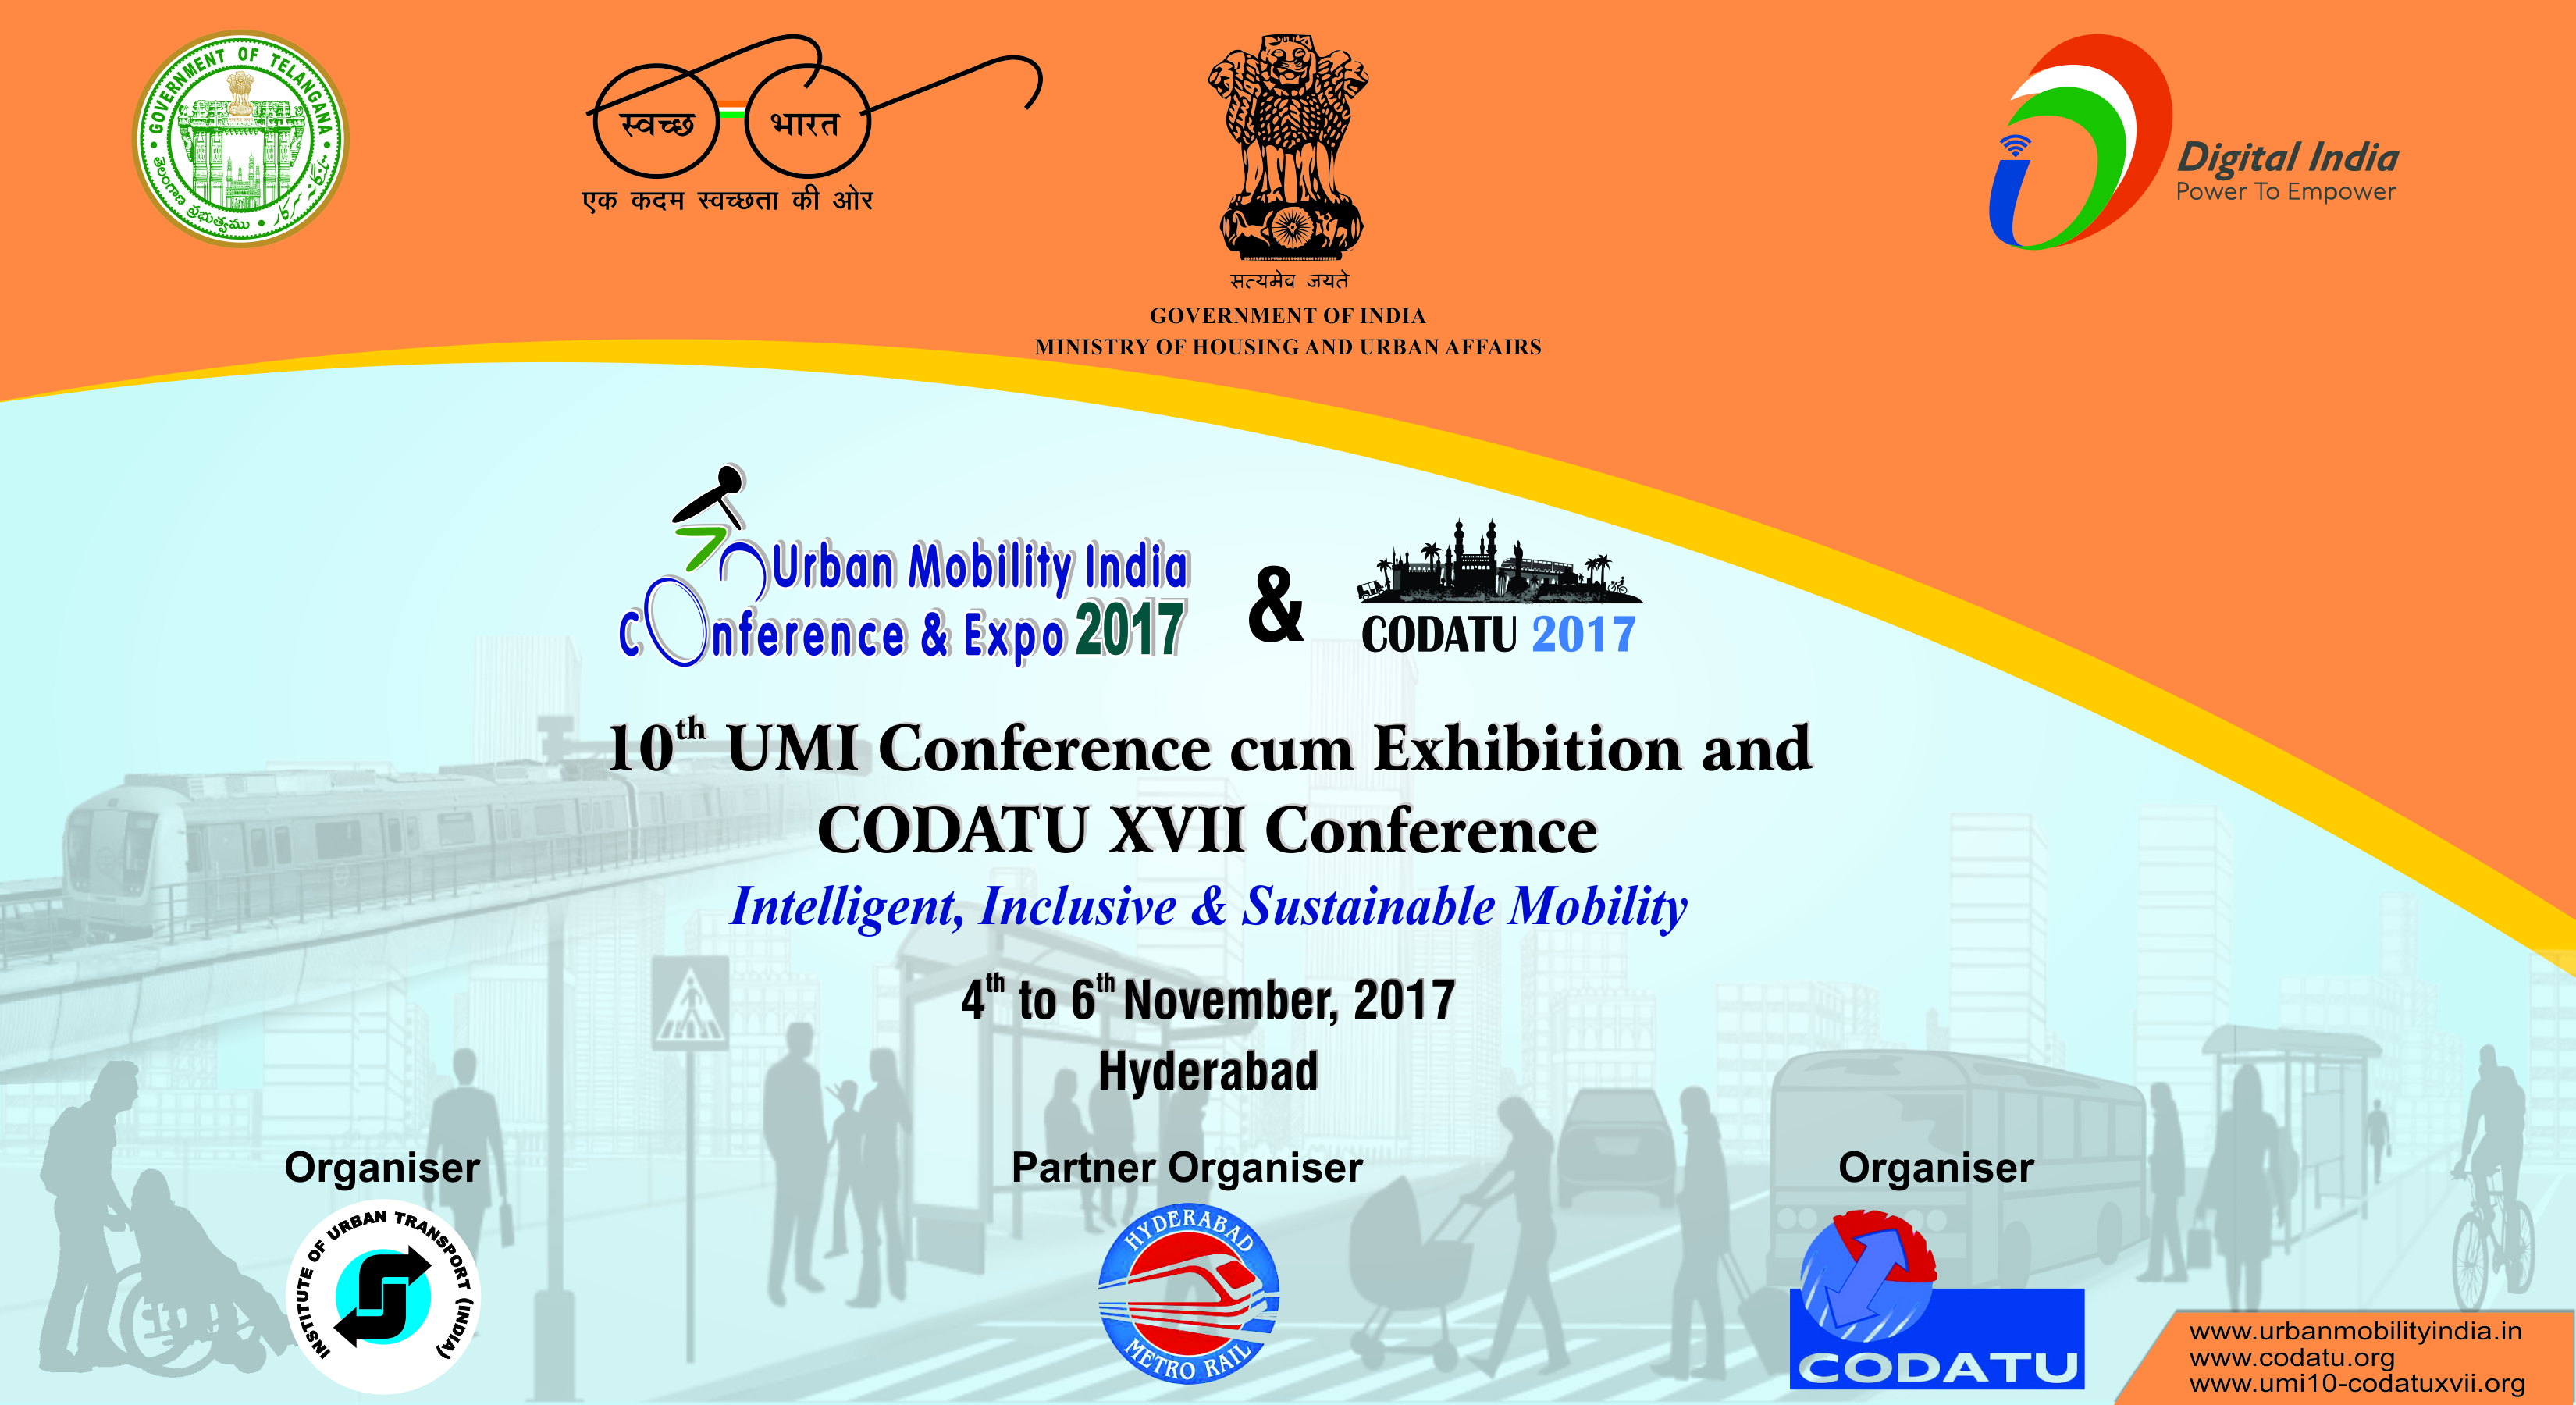 CODATU XVII – 2017 – Hyderabad (Inde): Mobilité Intelligente, Inclusive et Soutenable